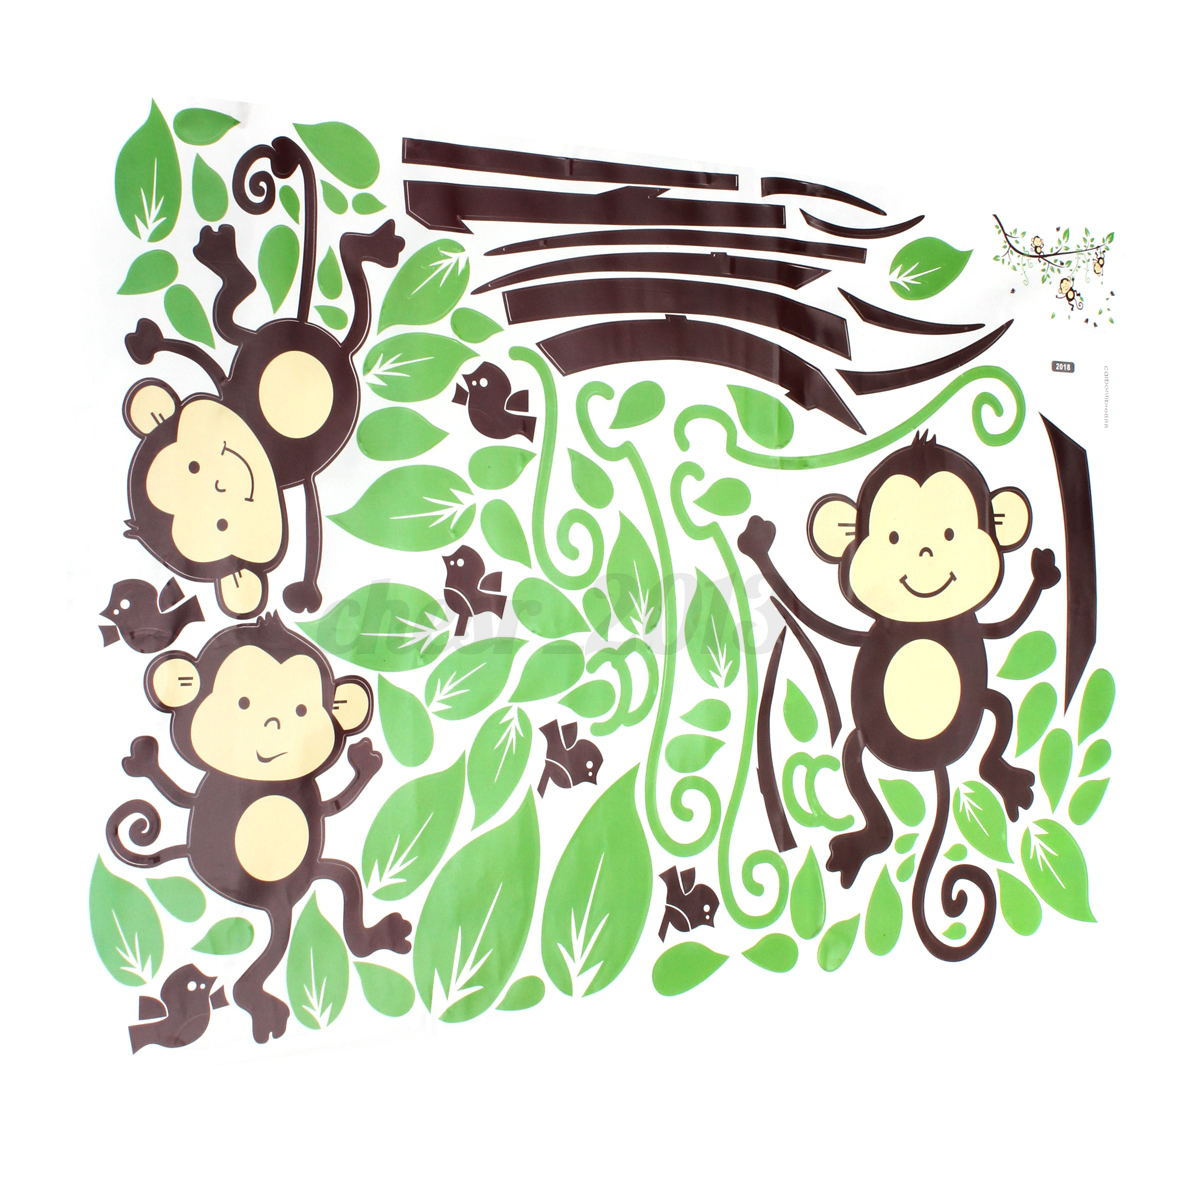 Wall Art Stickers Jungle : Monkey tree birds wall stickers kids nursery art decal